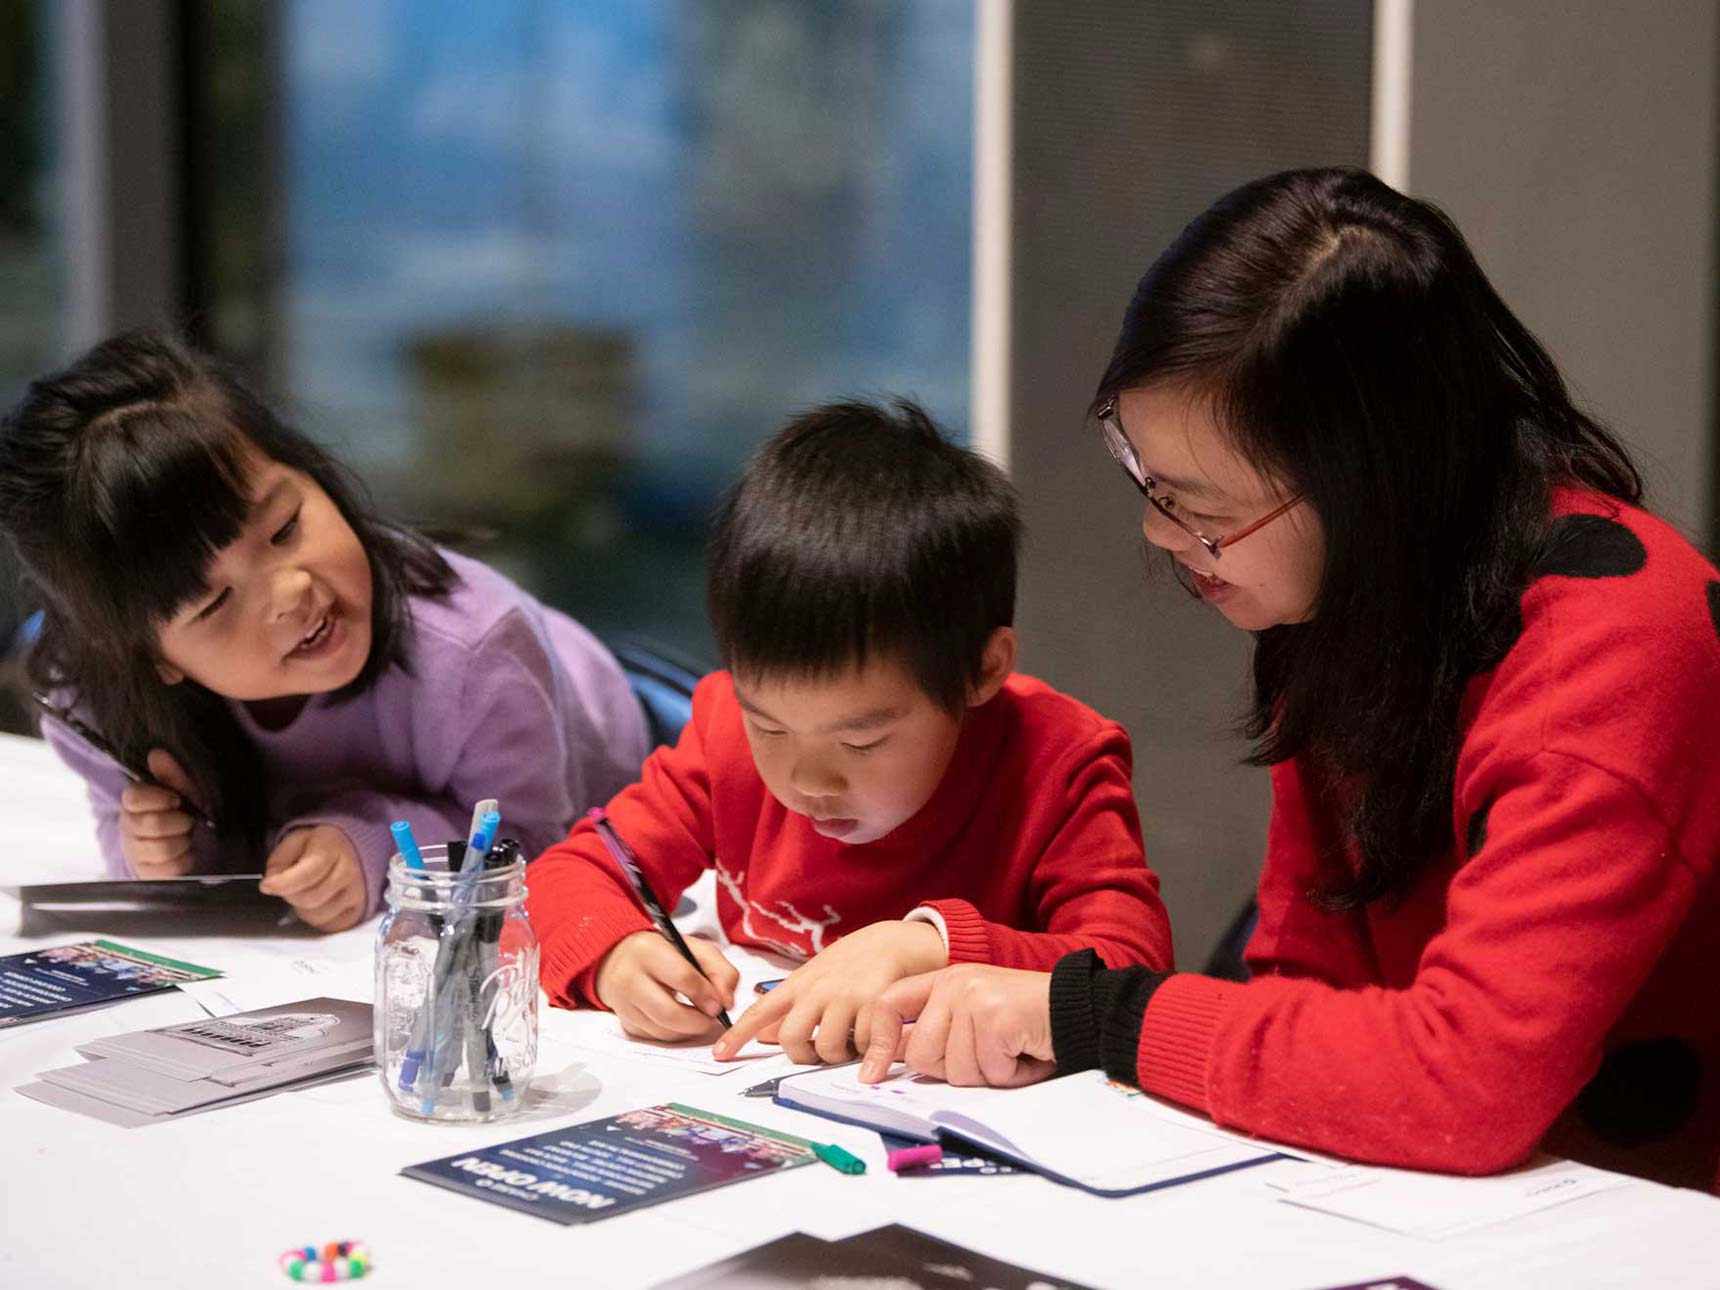 Parent engaged with two children working on art project at table